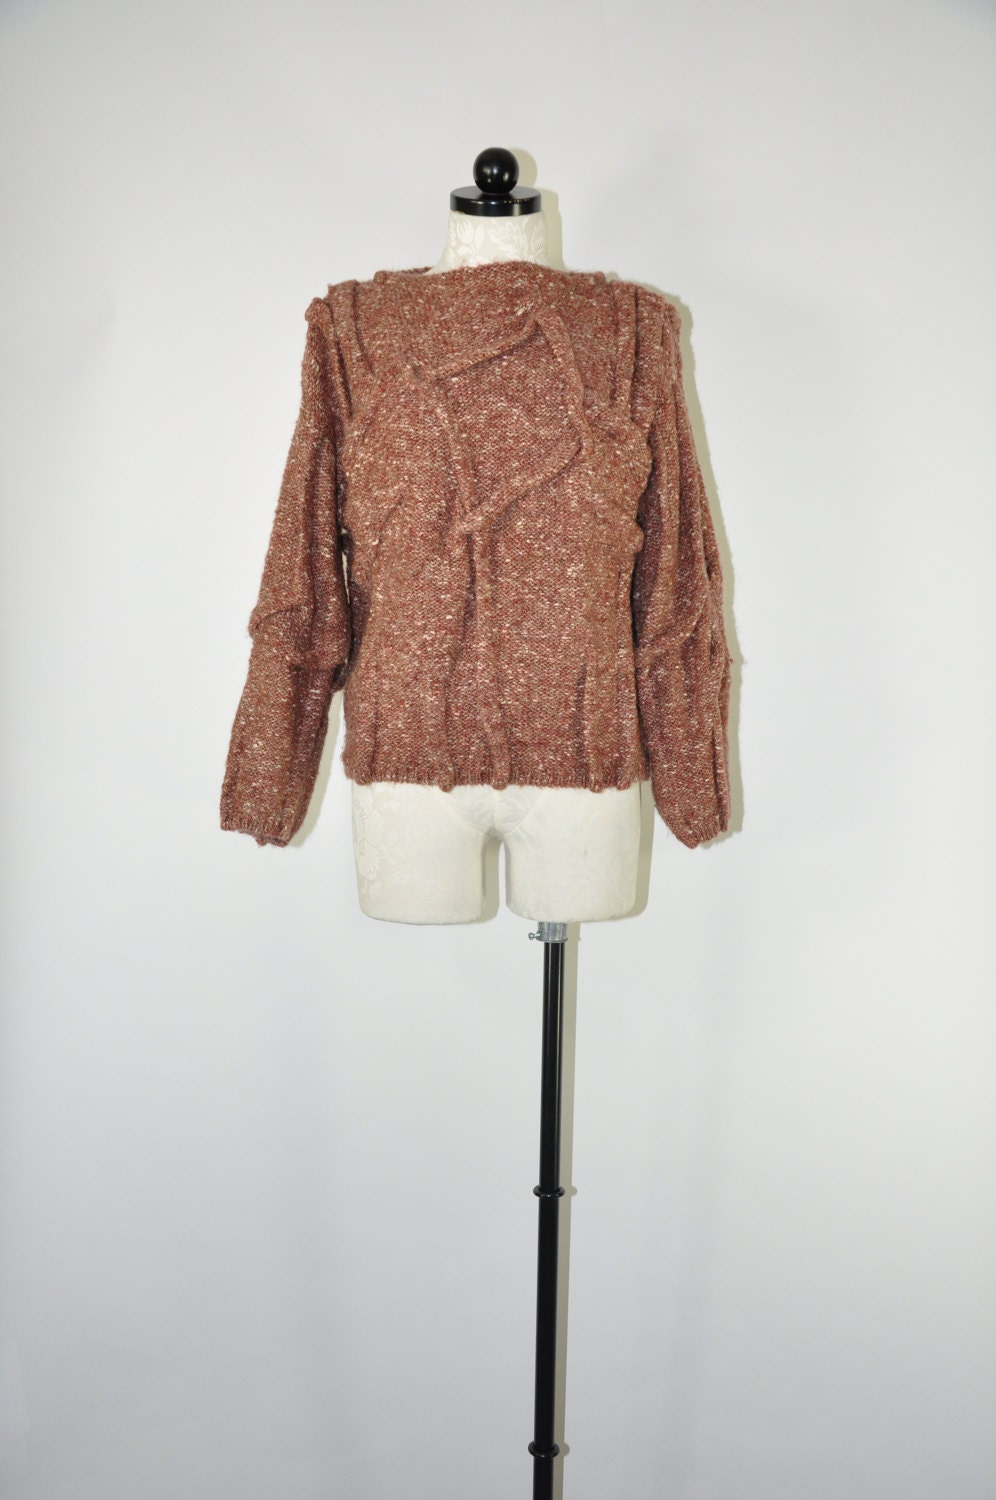 80s Sweatshirts, Sweaters, Vests | Women 80S Spice Brown Sweater1980S Chunky Knit Pullover Avany Garde Oversize $78.00 AT vintagedancer.com